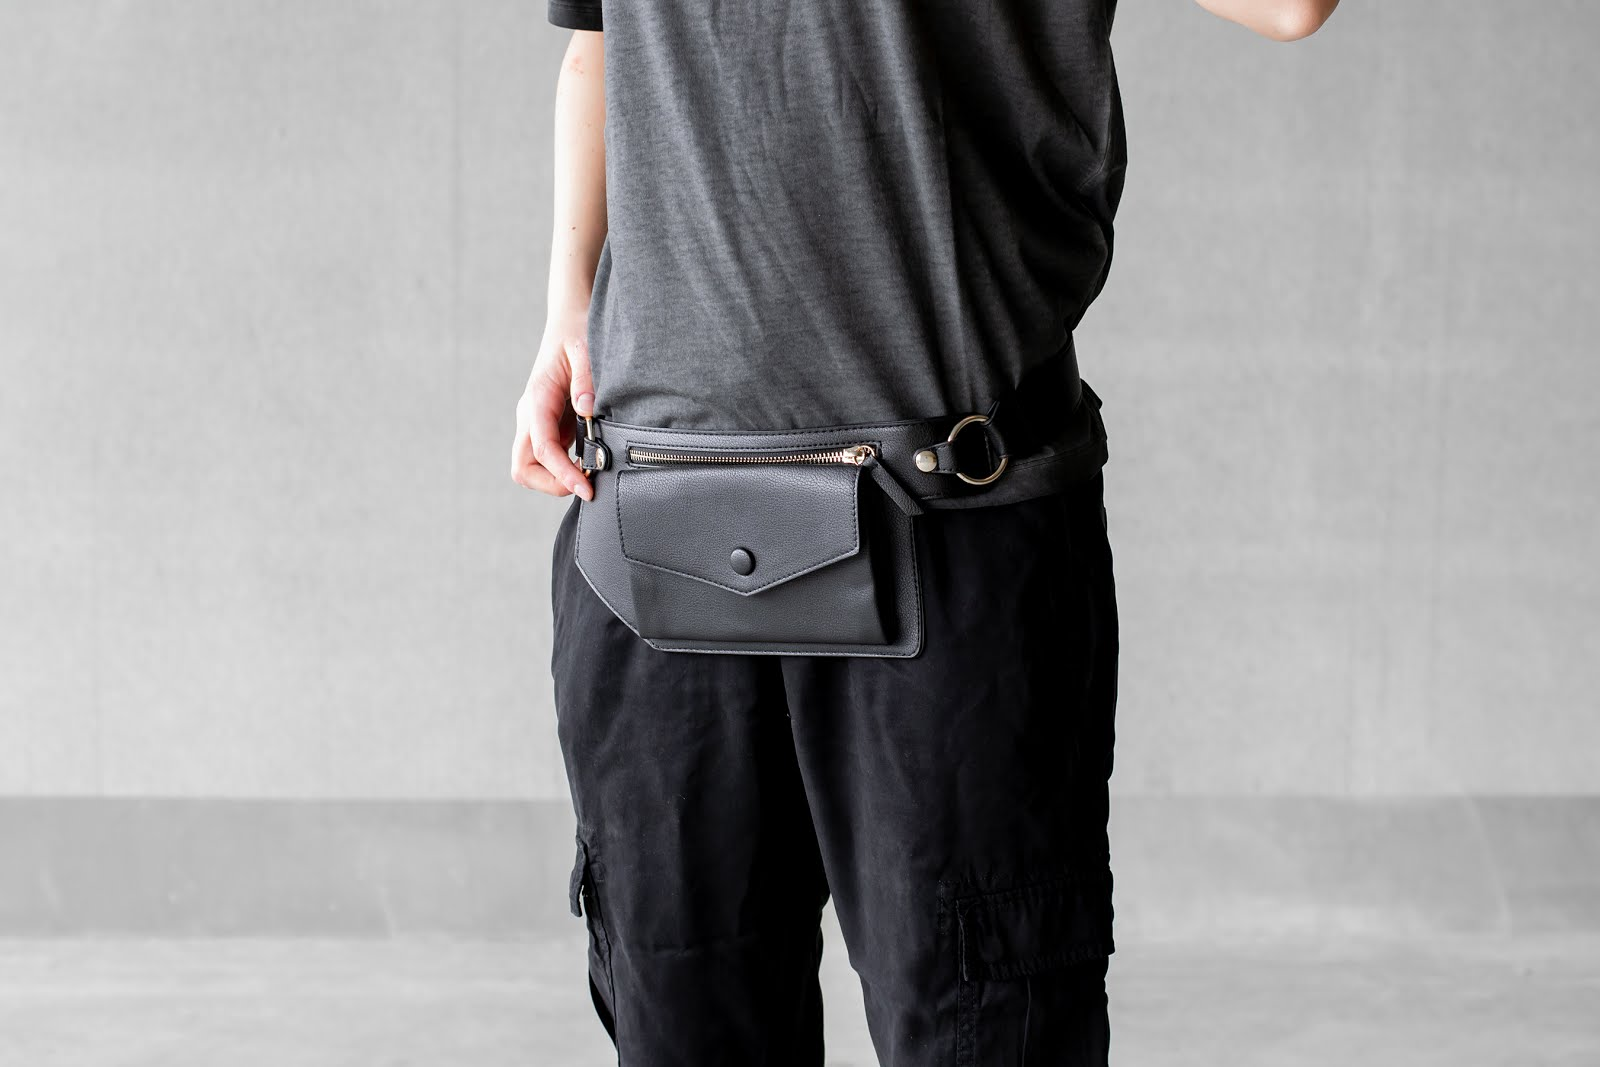 s.Oliver, belt bag, bum bag, minimal outfit, black, dad sneakers, street style, 2019, trends